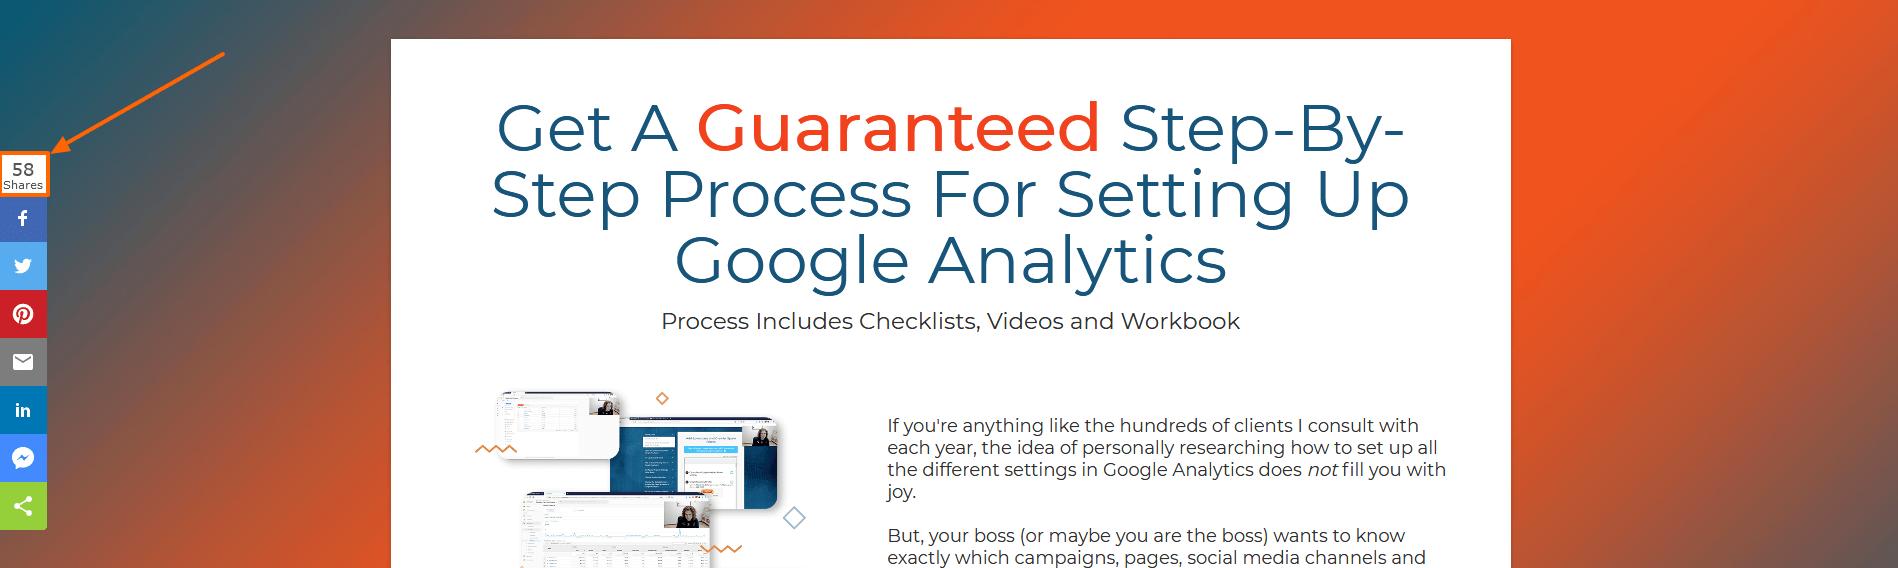 Guaranteed Step By Step Process For Resolving Google Analytics Problems